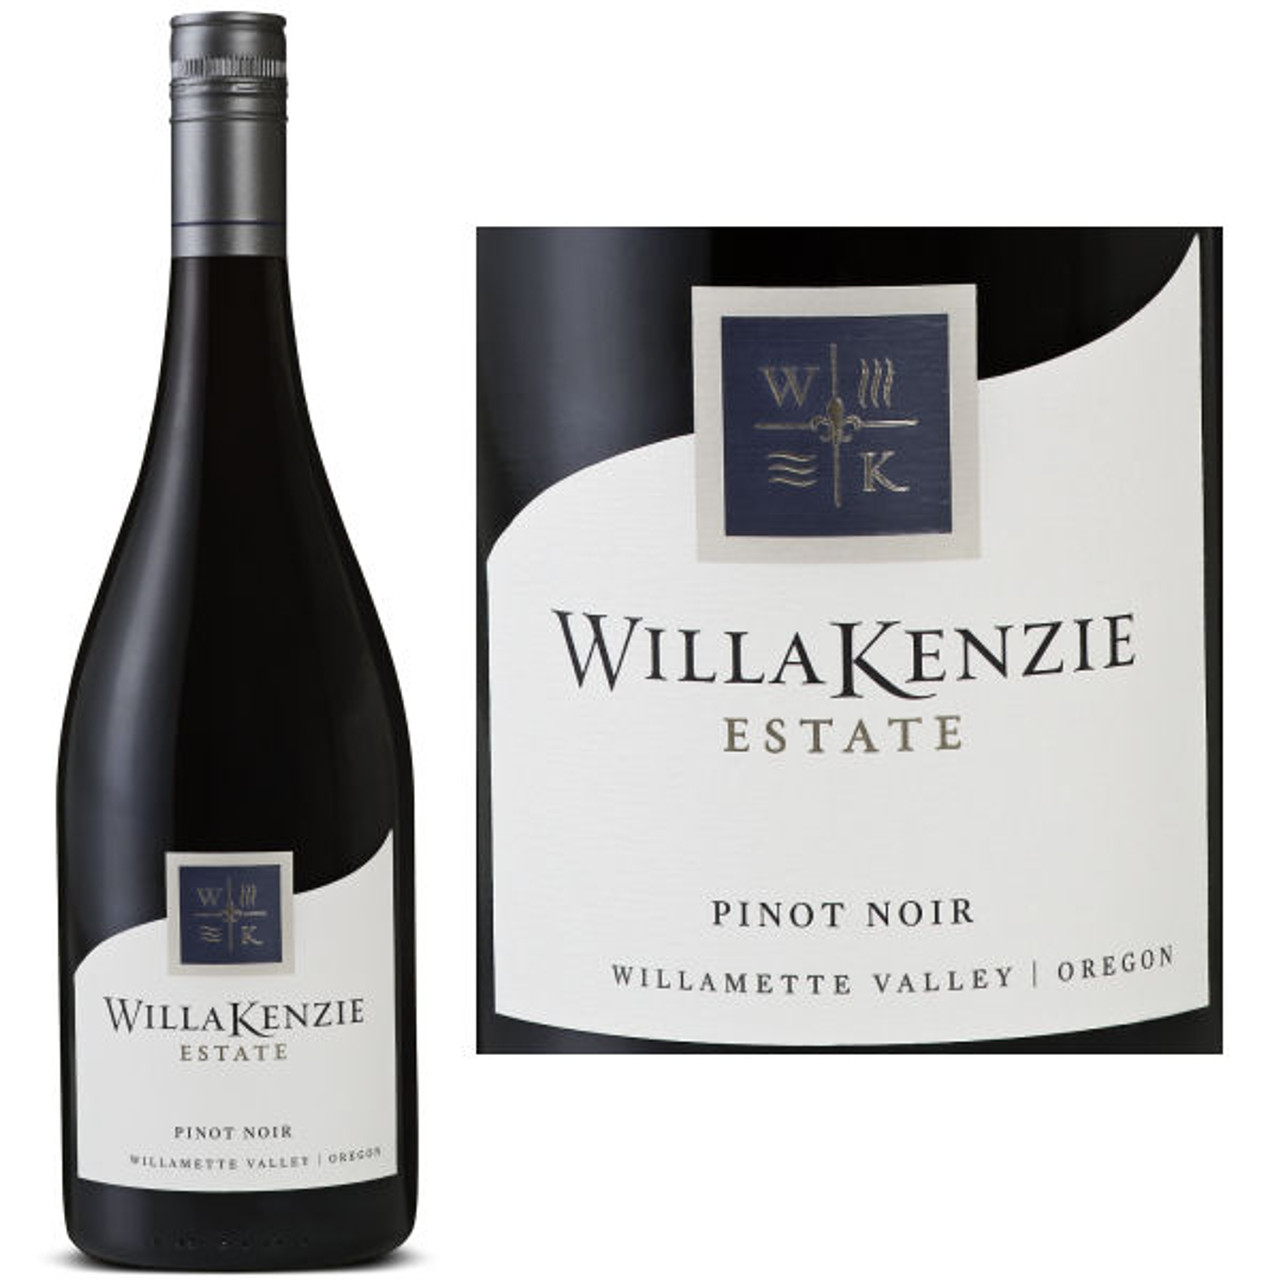 WillaKenzie Estate Willamette Valley Pinot Noir